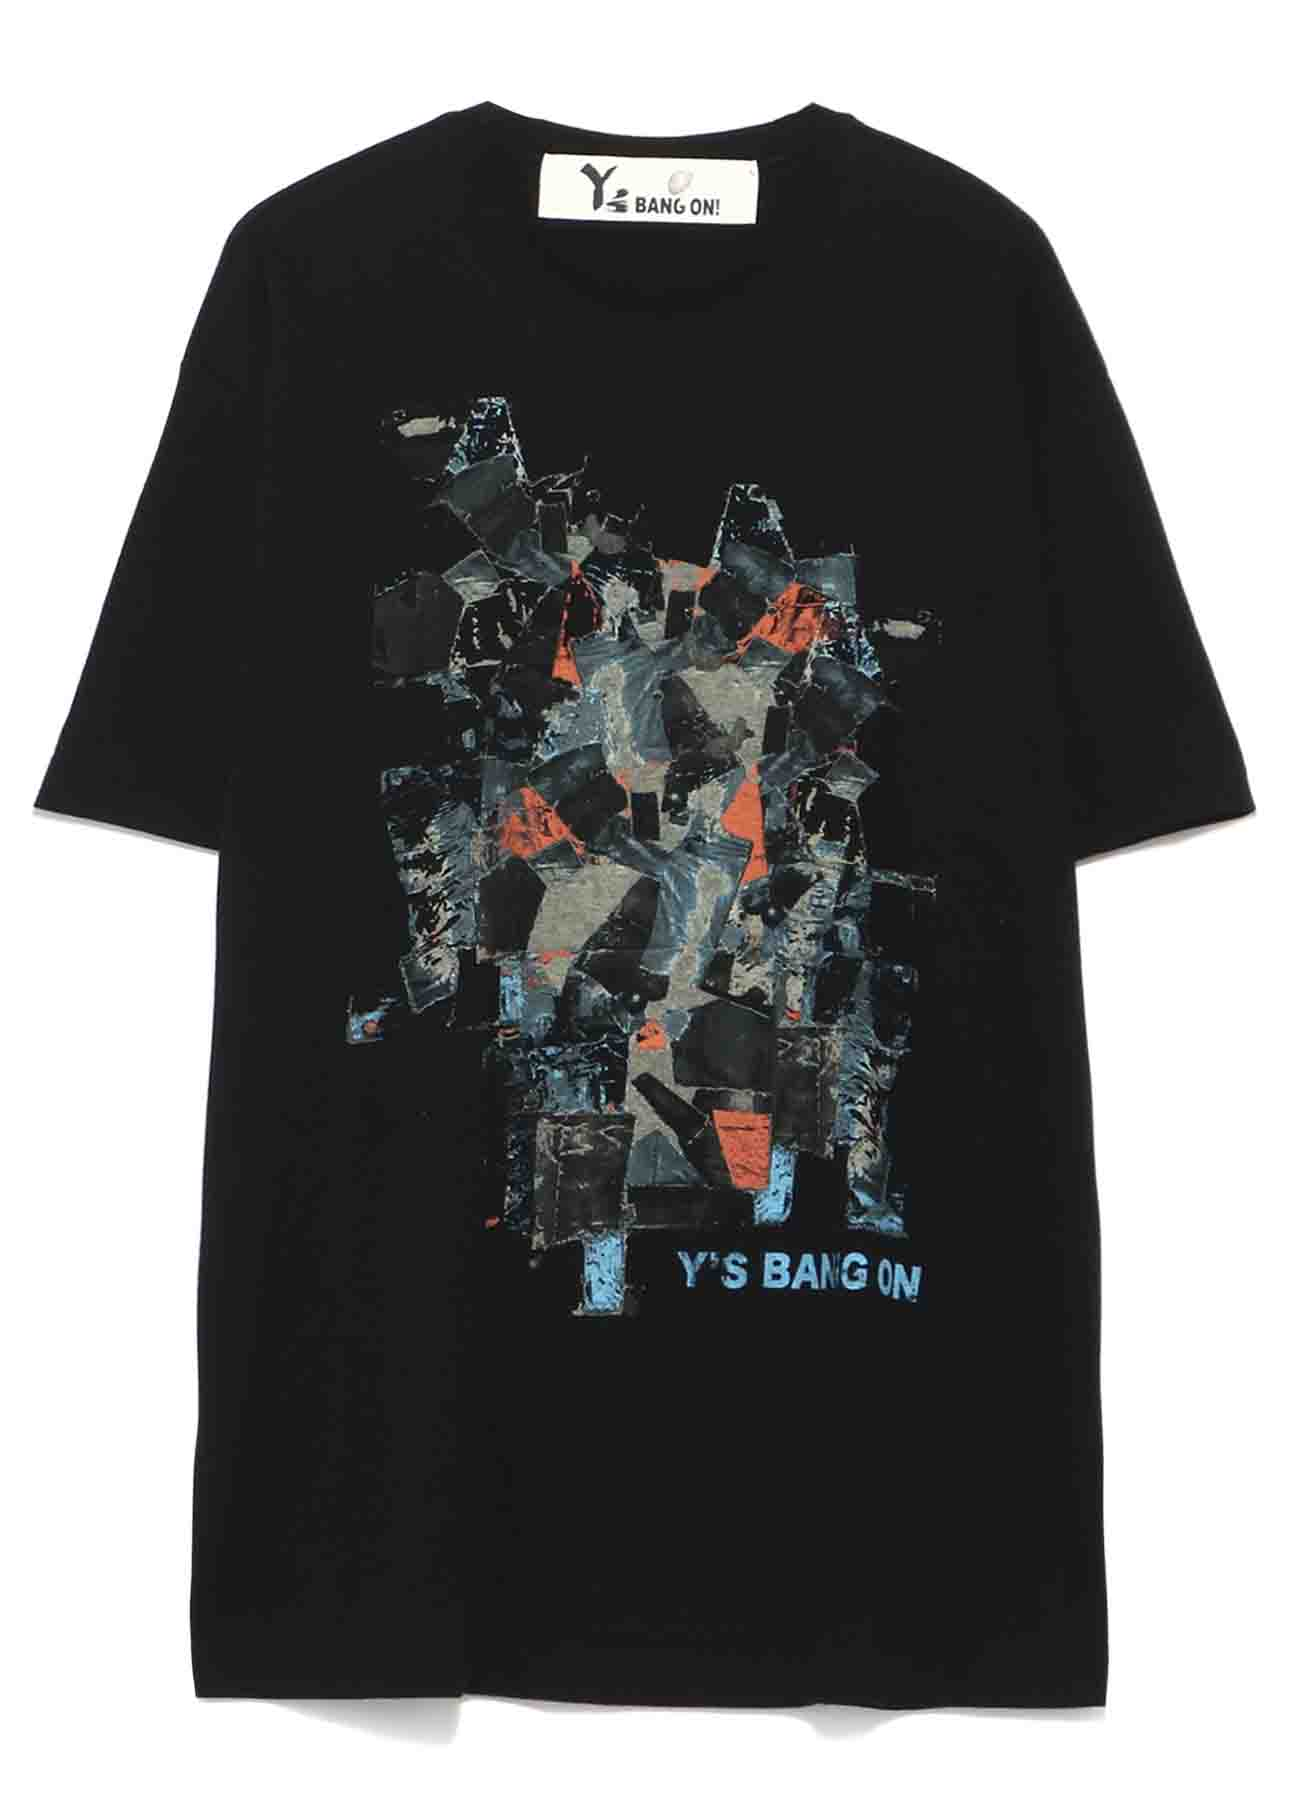 Y's BANG ON!Denim collage T-shirts